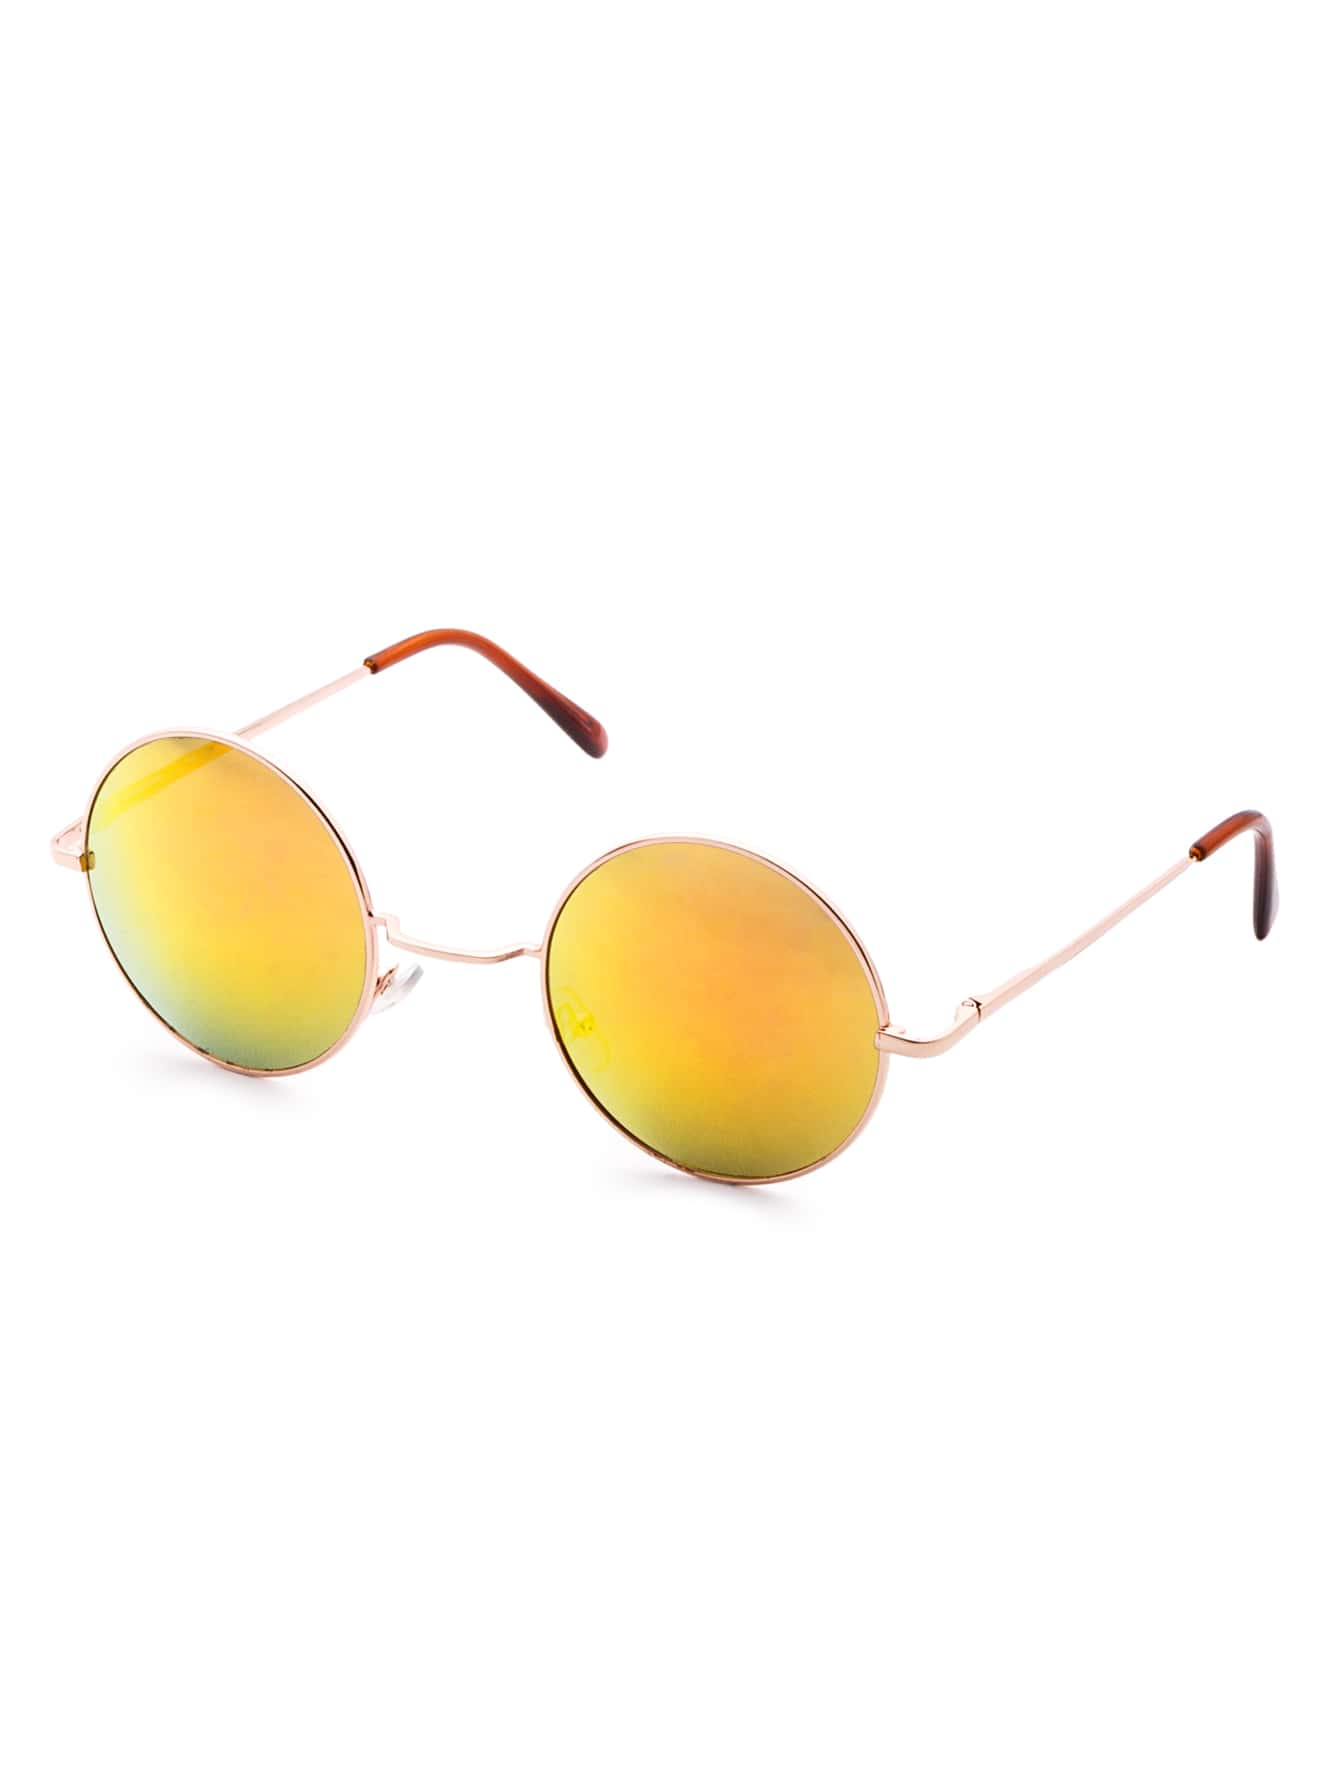 Red Lens Gold Frame Sunglasses : Gold Frame Red Mirrored Round Lens Sunglasses -SheIn ...